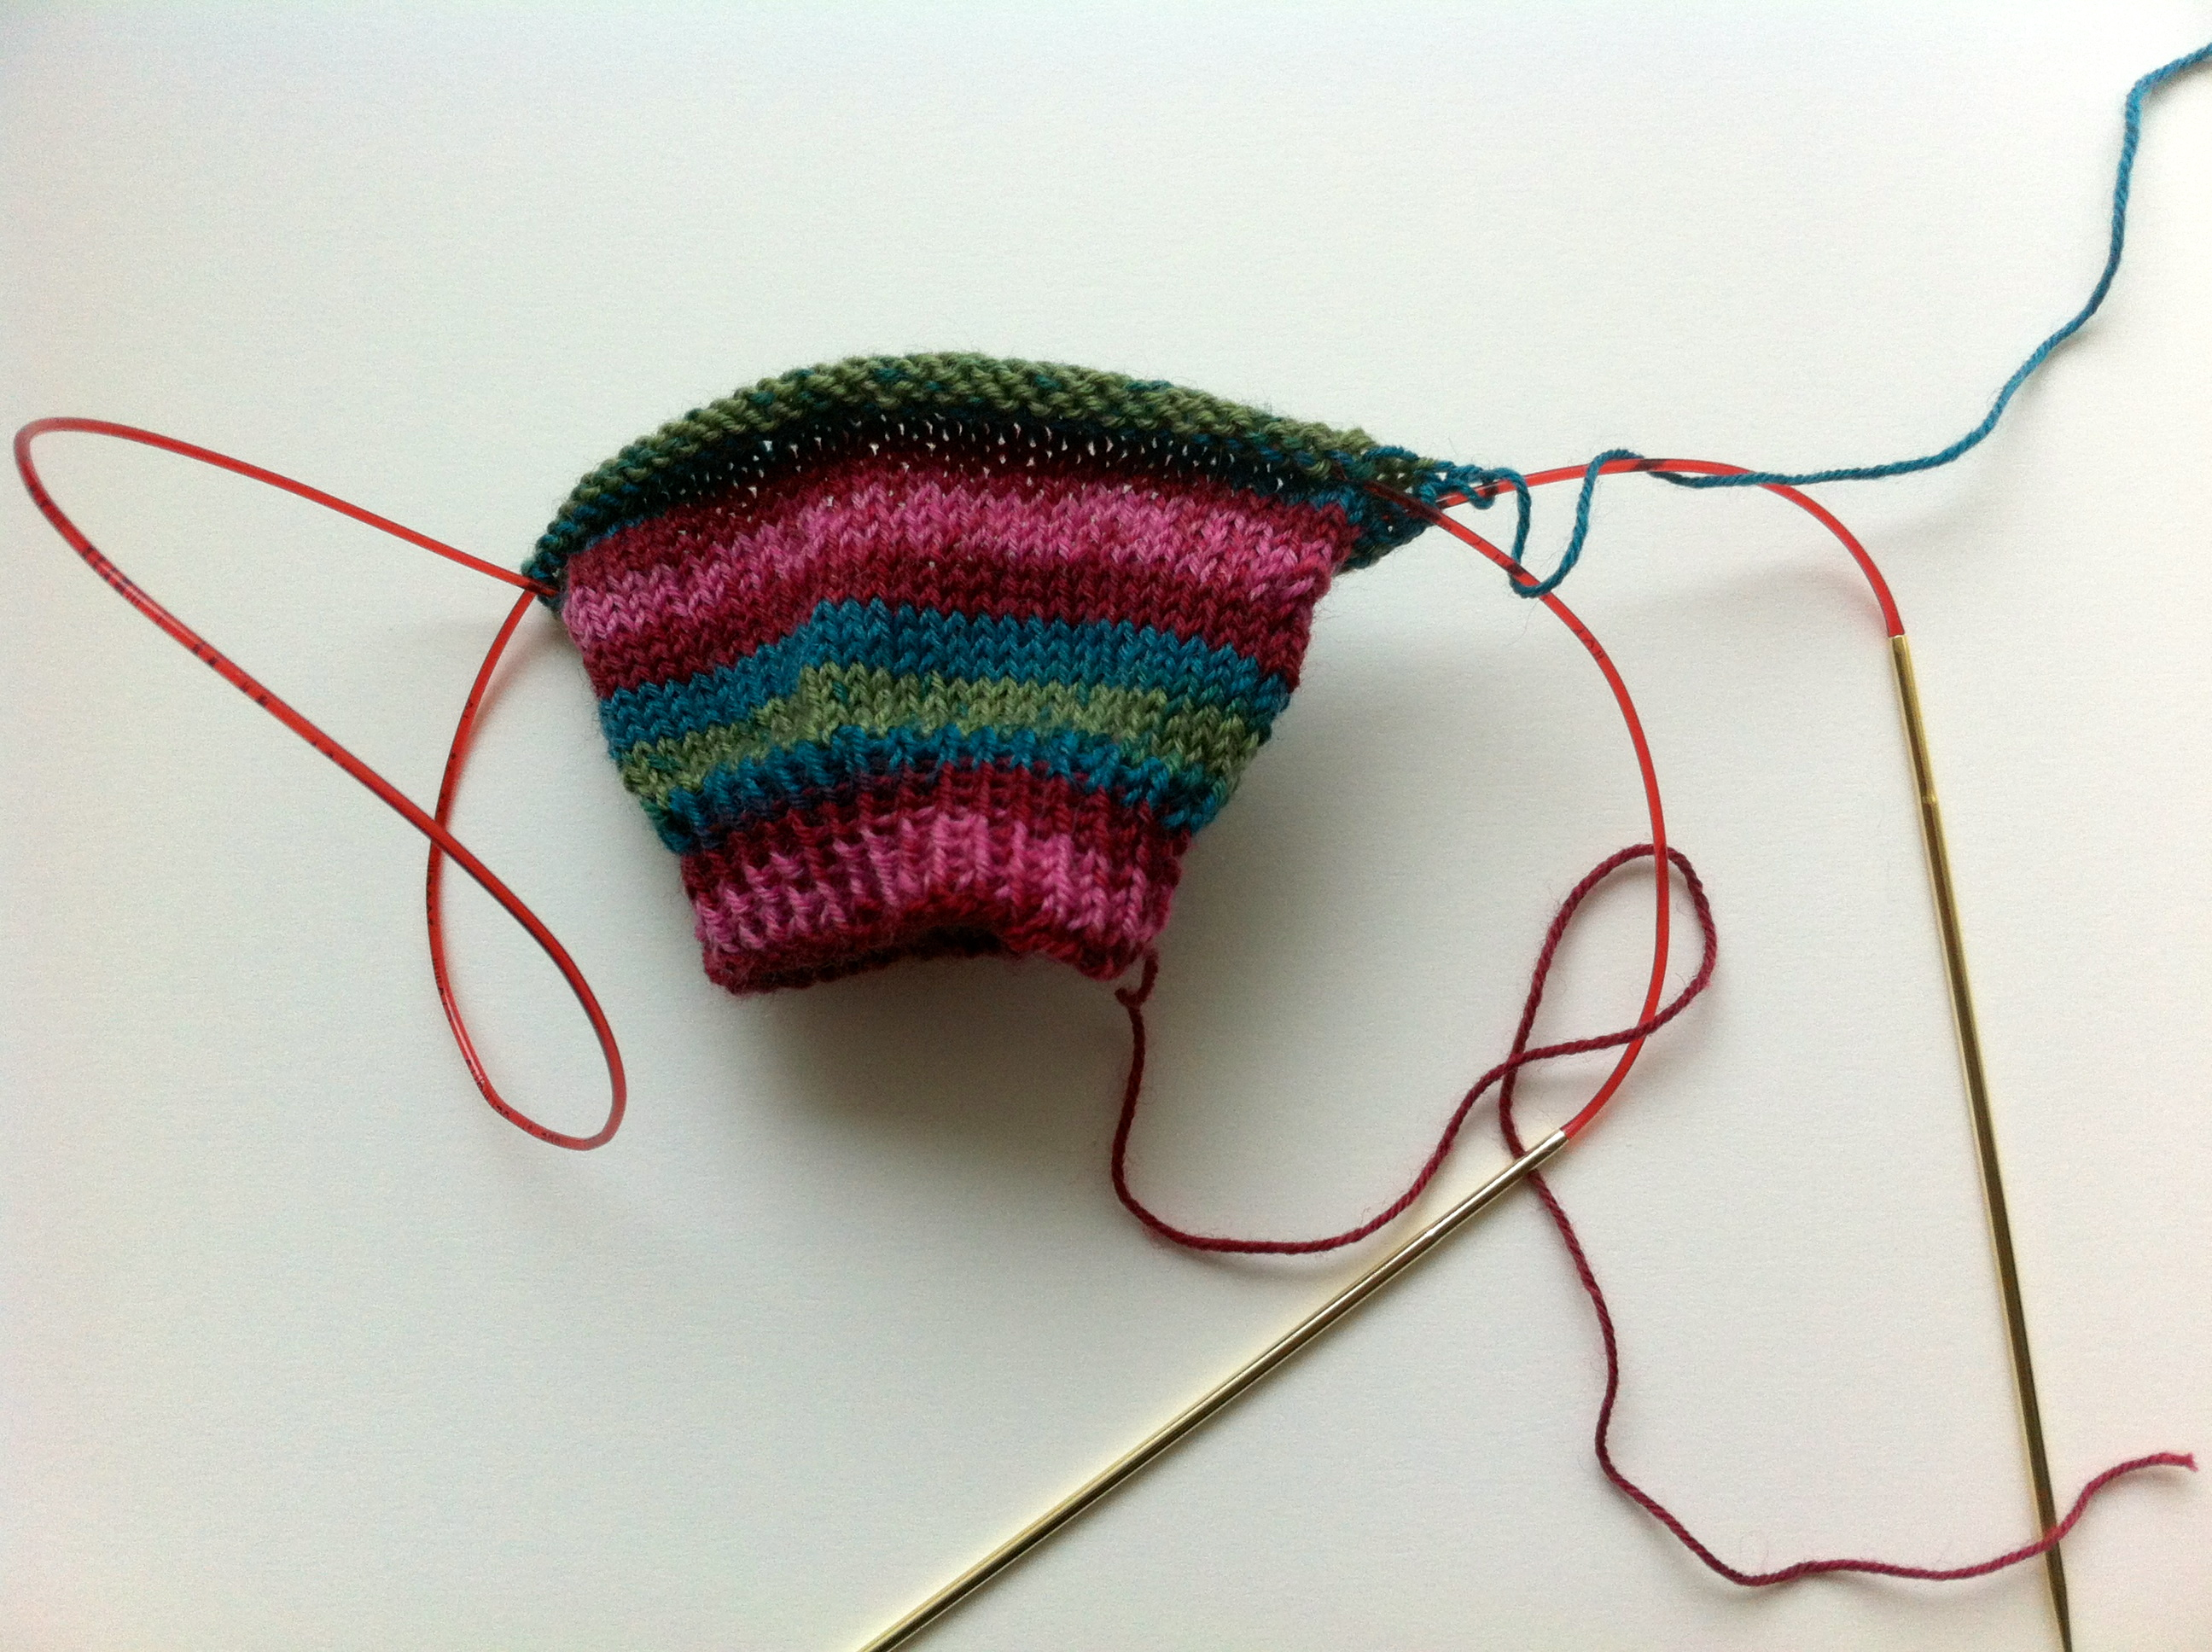 magic loop Knitsamadworld